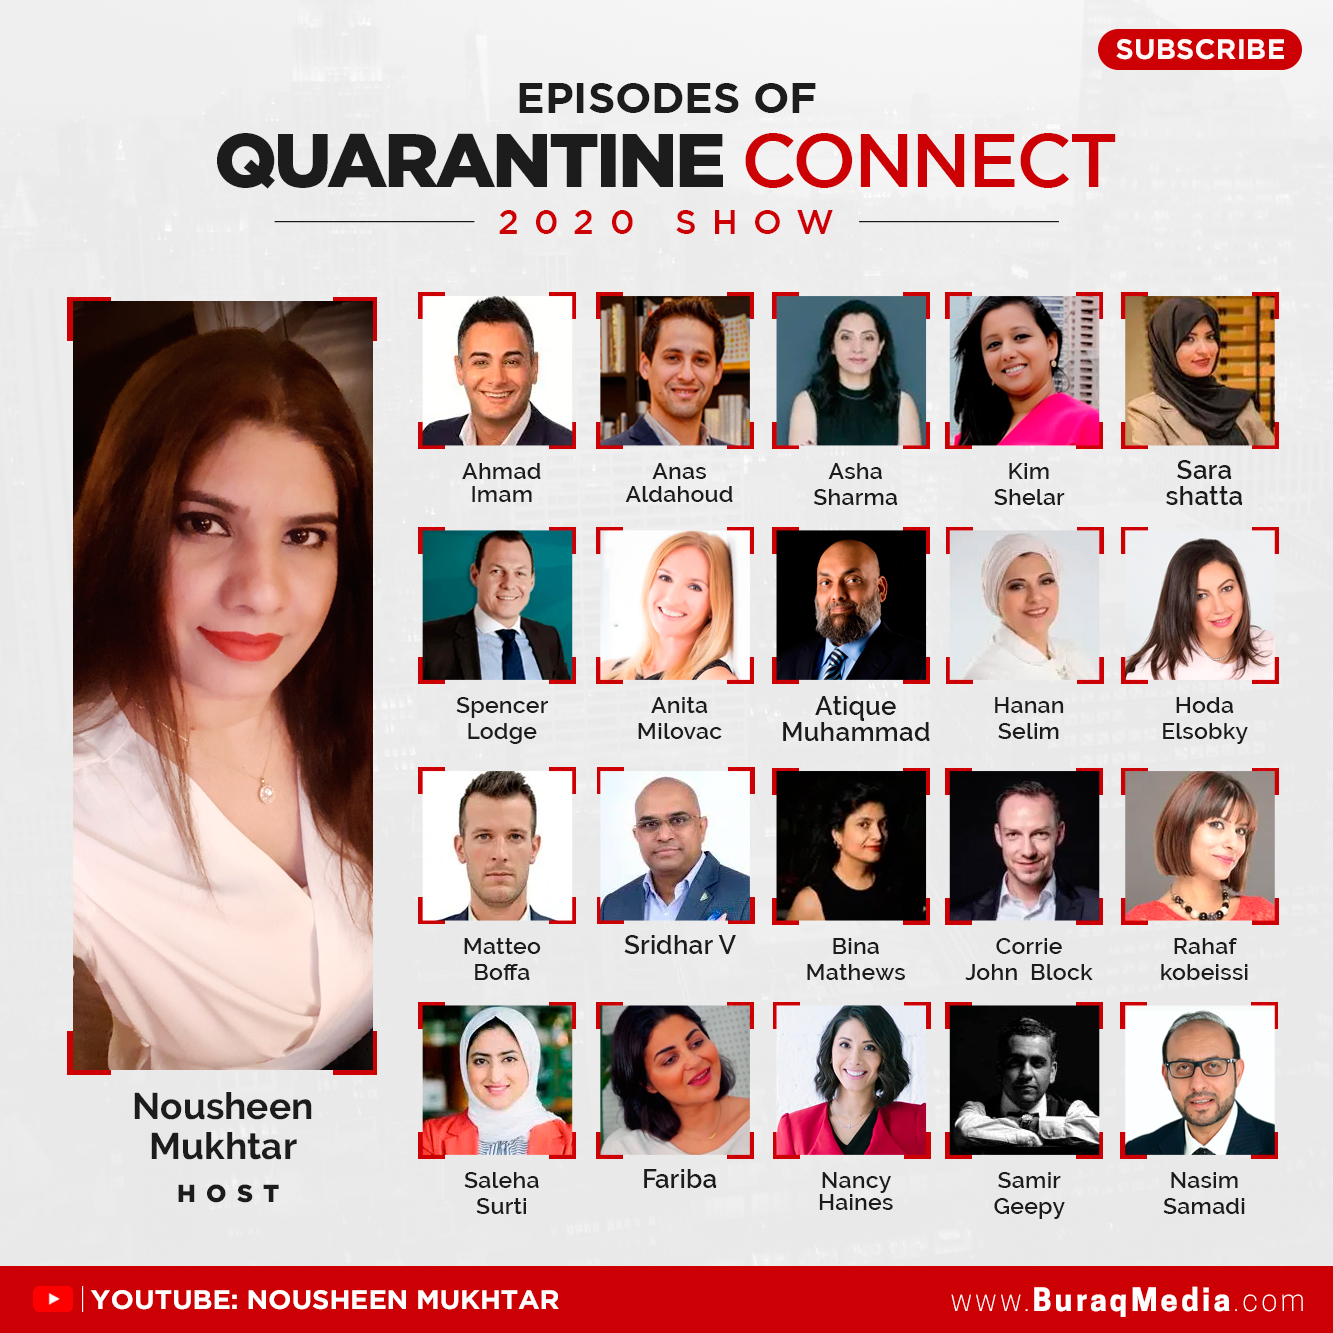 Quarantine connect 2020 - How Build Buyer Trust